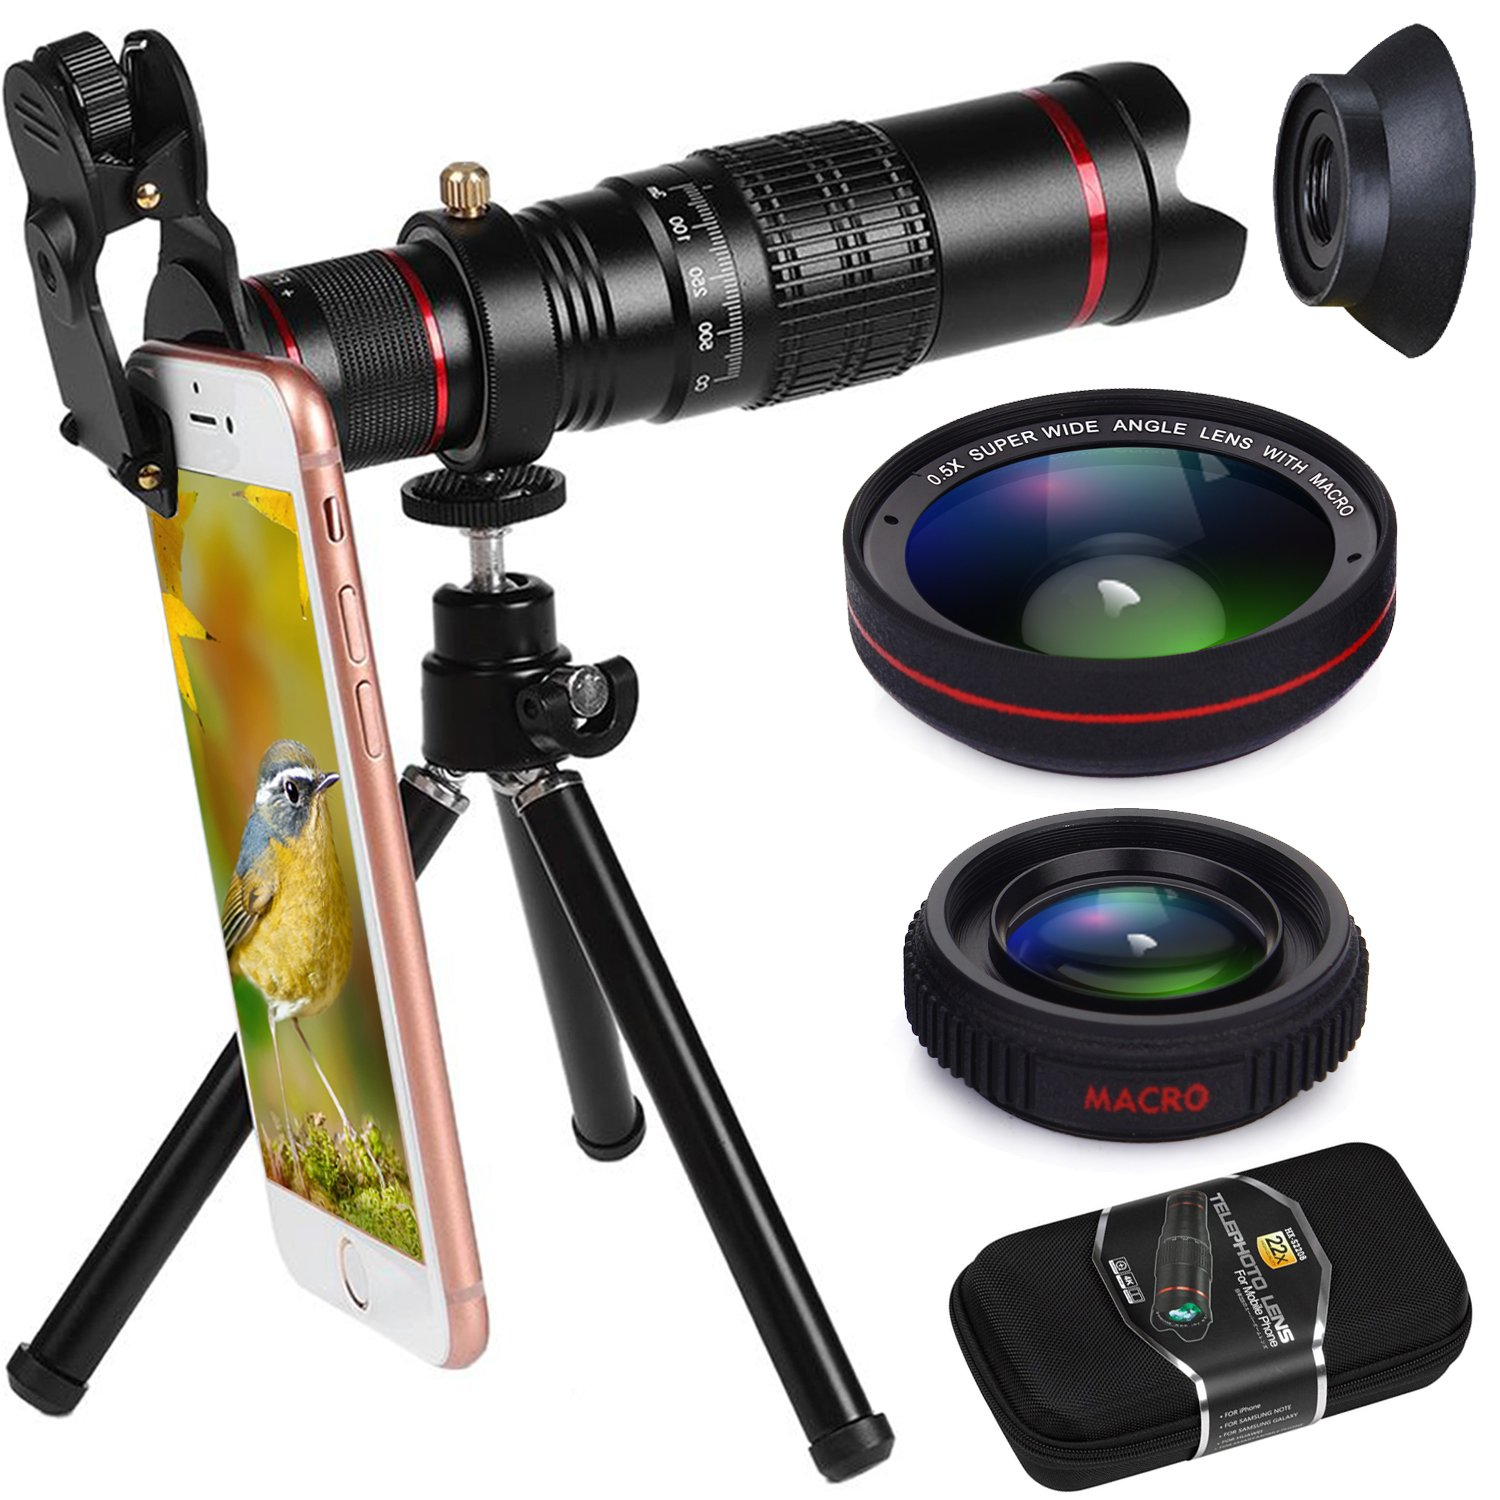 Phone Camera Lens, Bhuato Upgraded 22X Zoom Telephoto Lens + 0.5 Wide-Angle Lens + 15X Macro Lens + Tripod + Carrying Case Compatible iPhone X/8/7/7 Plus/6/6s, Samsung Galaxy S8/S7/S6 Most Smartphones by BHUATO